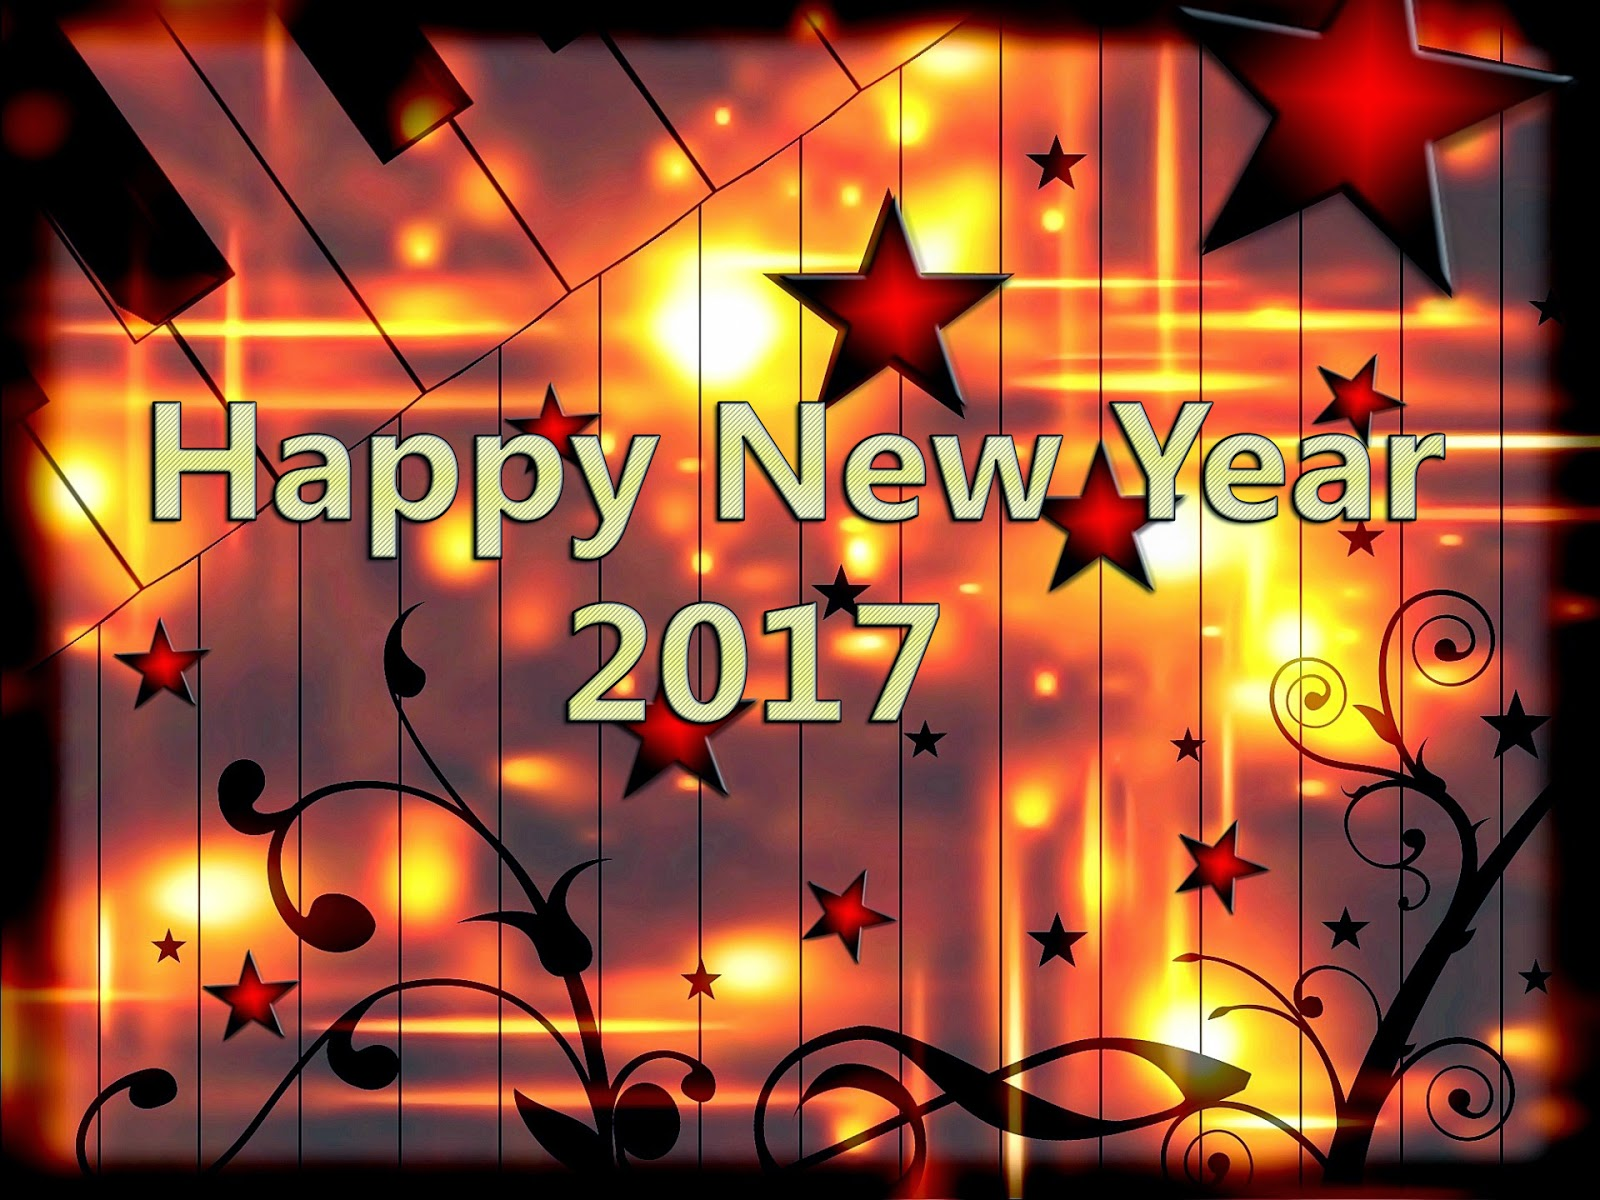 Happy New Year Wallpapers 2015 Hd Images Free Download Written By